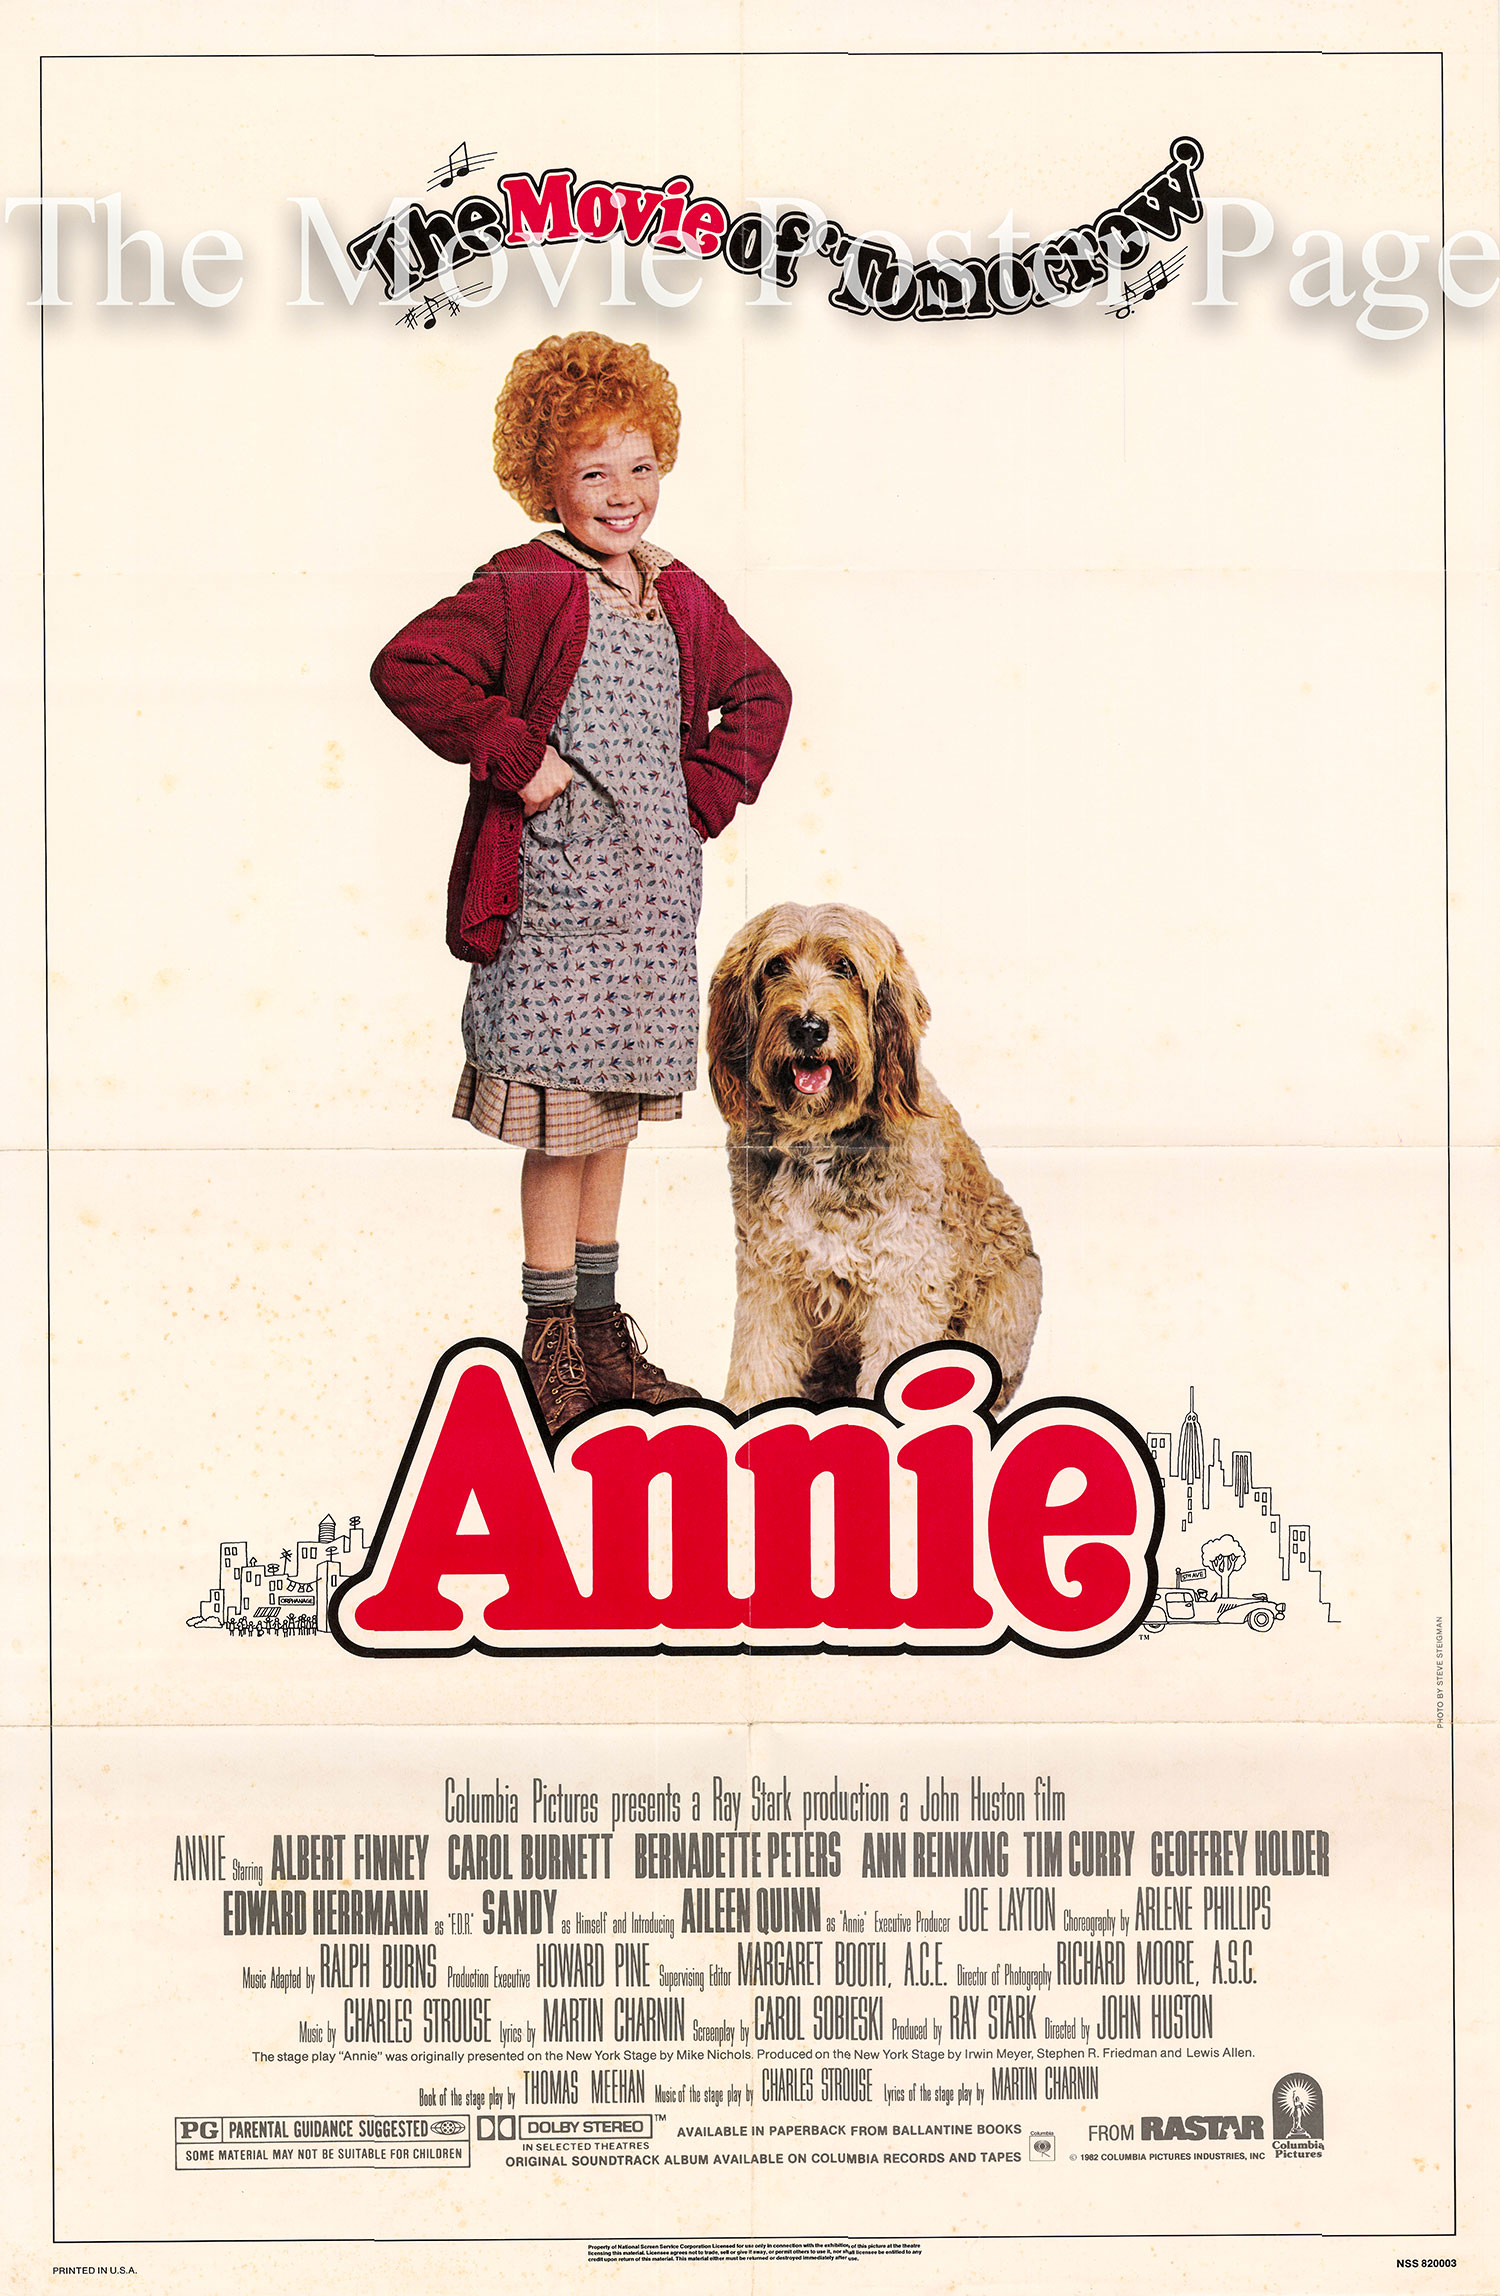 Pictured is a US promotional one-sheet poster for the 1982 John Huston film Annie starring Albert Finney.